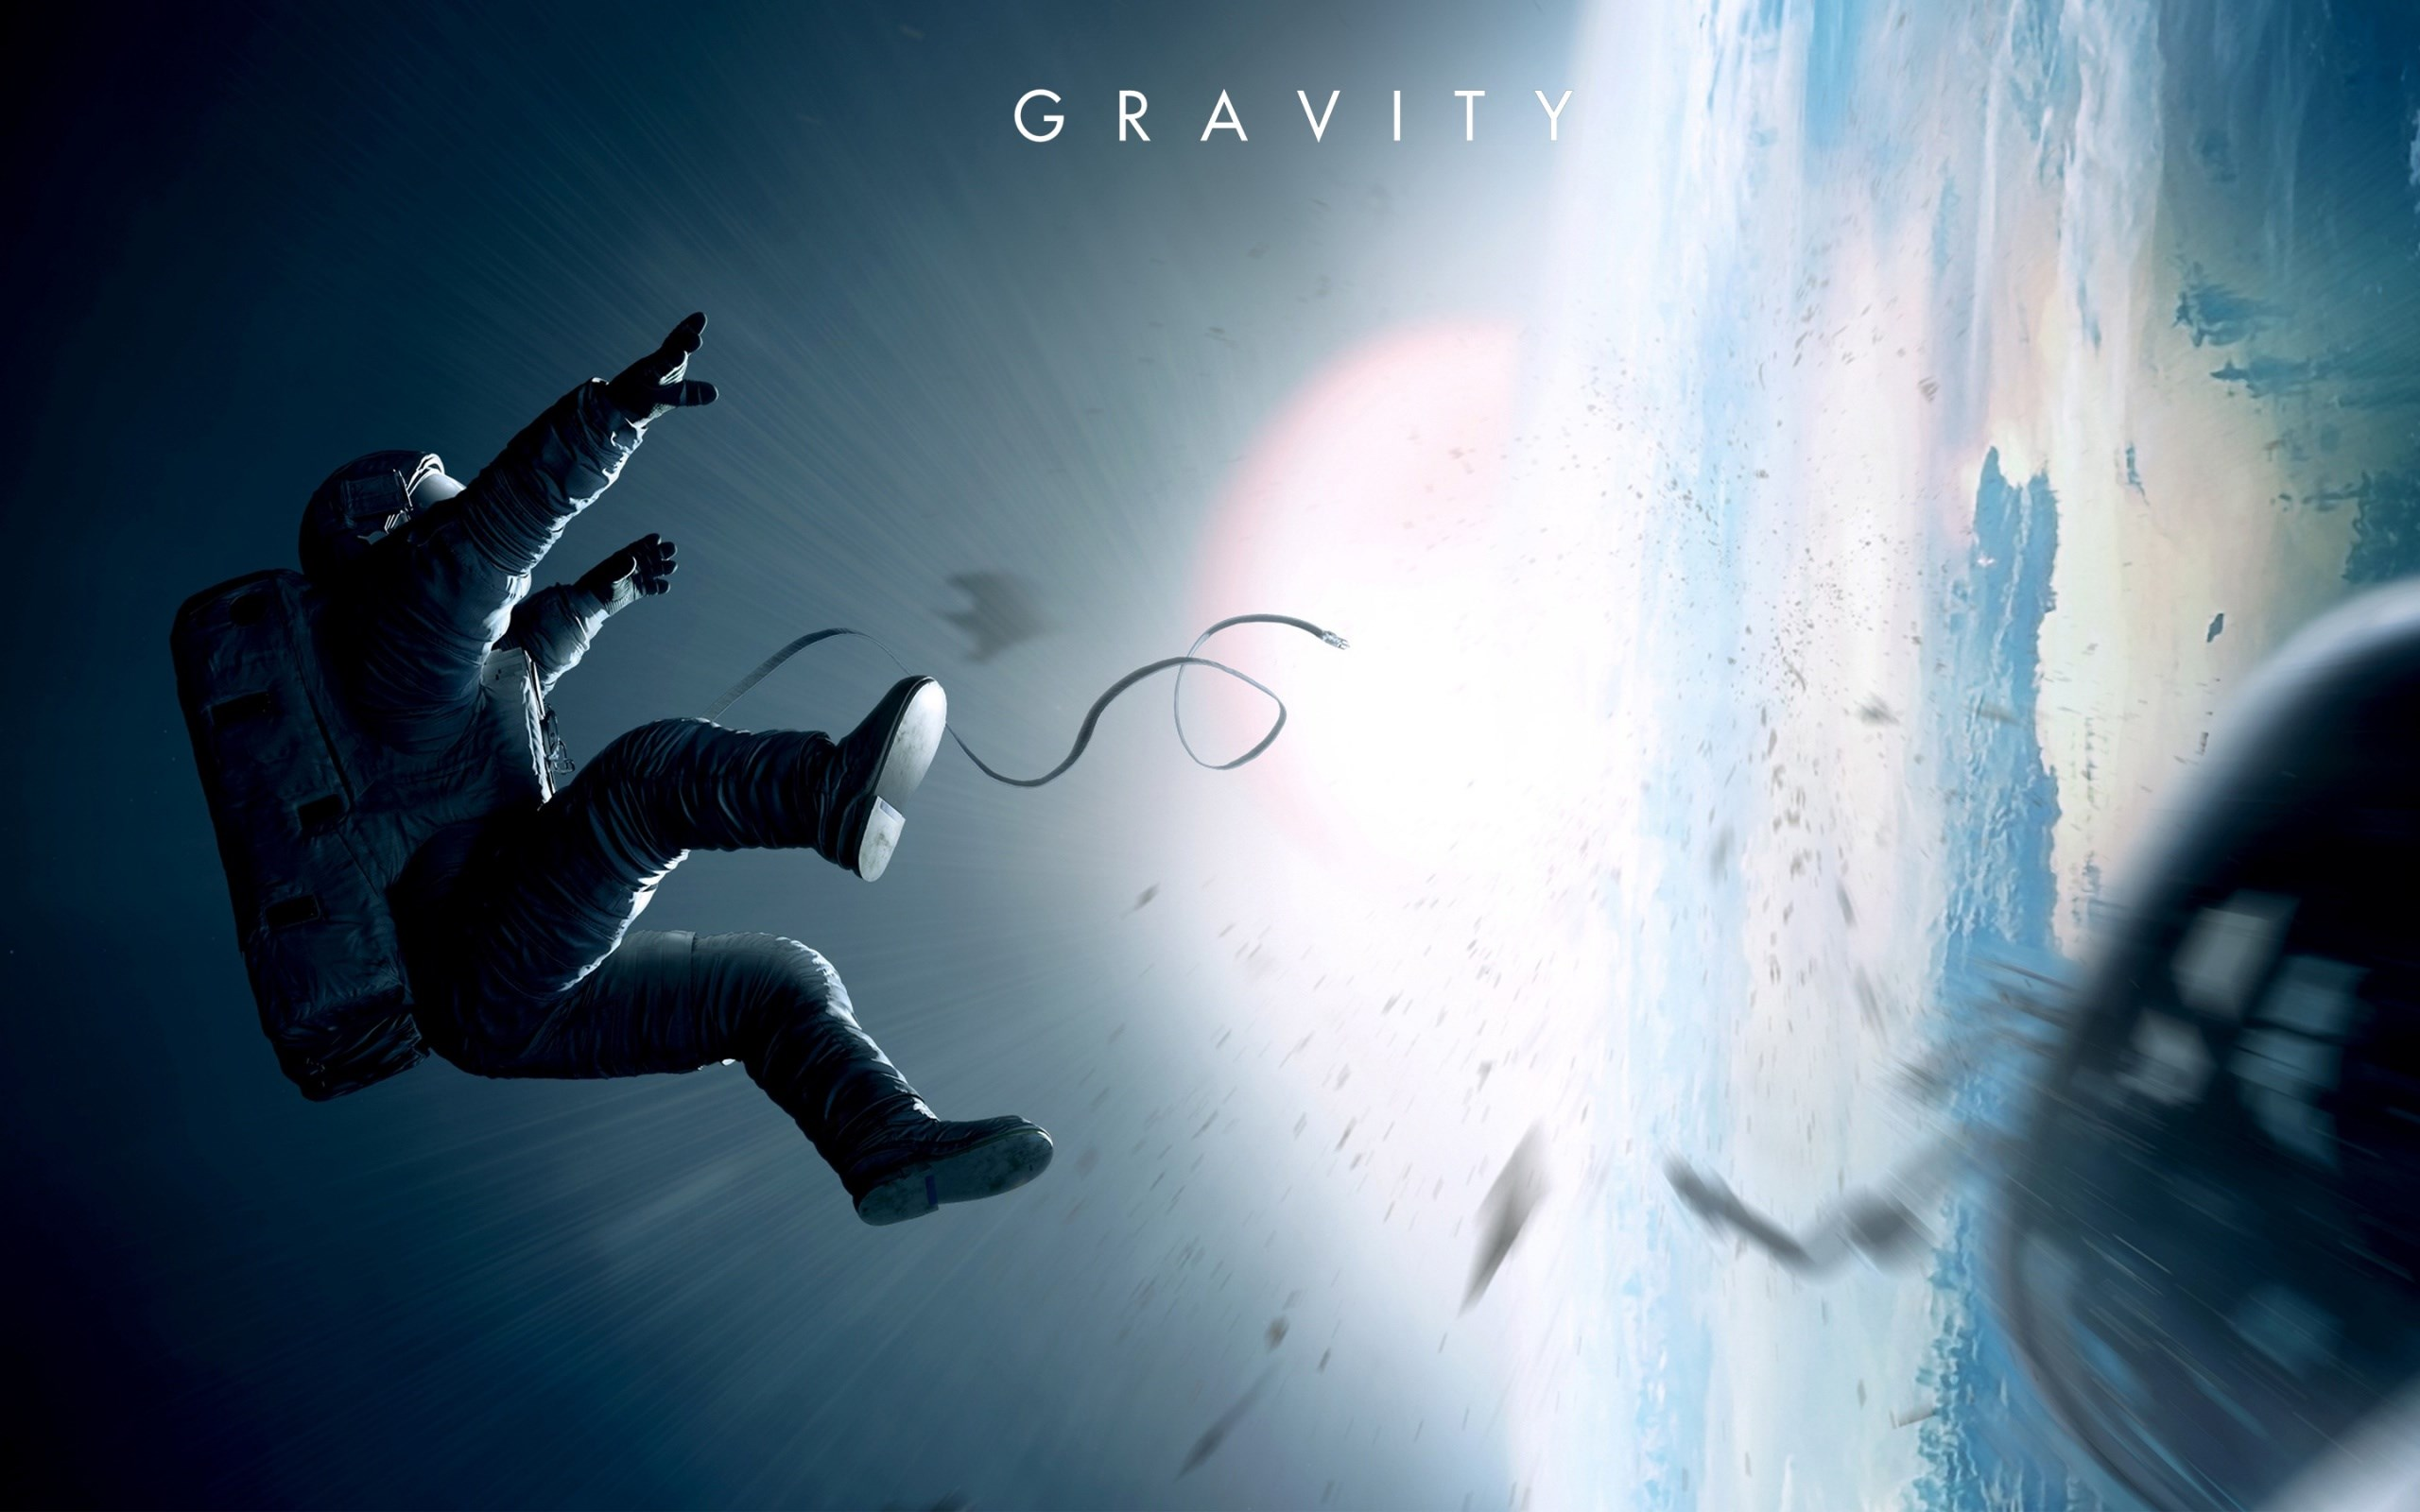 gravity-2013-movie-poster-wallpaper-2560x1600